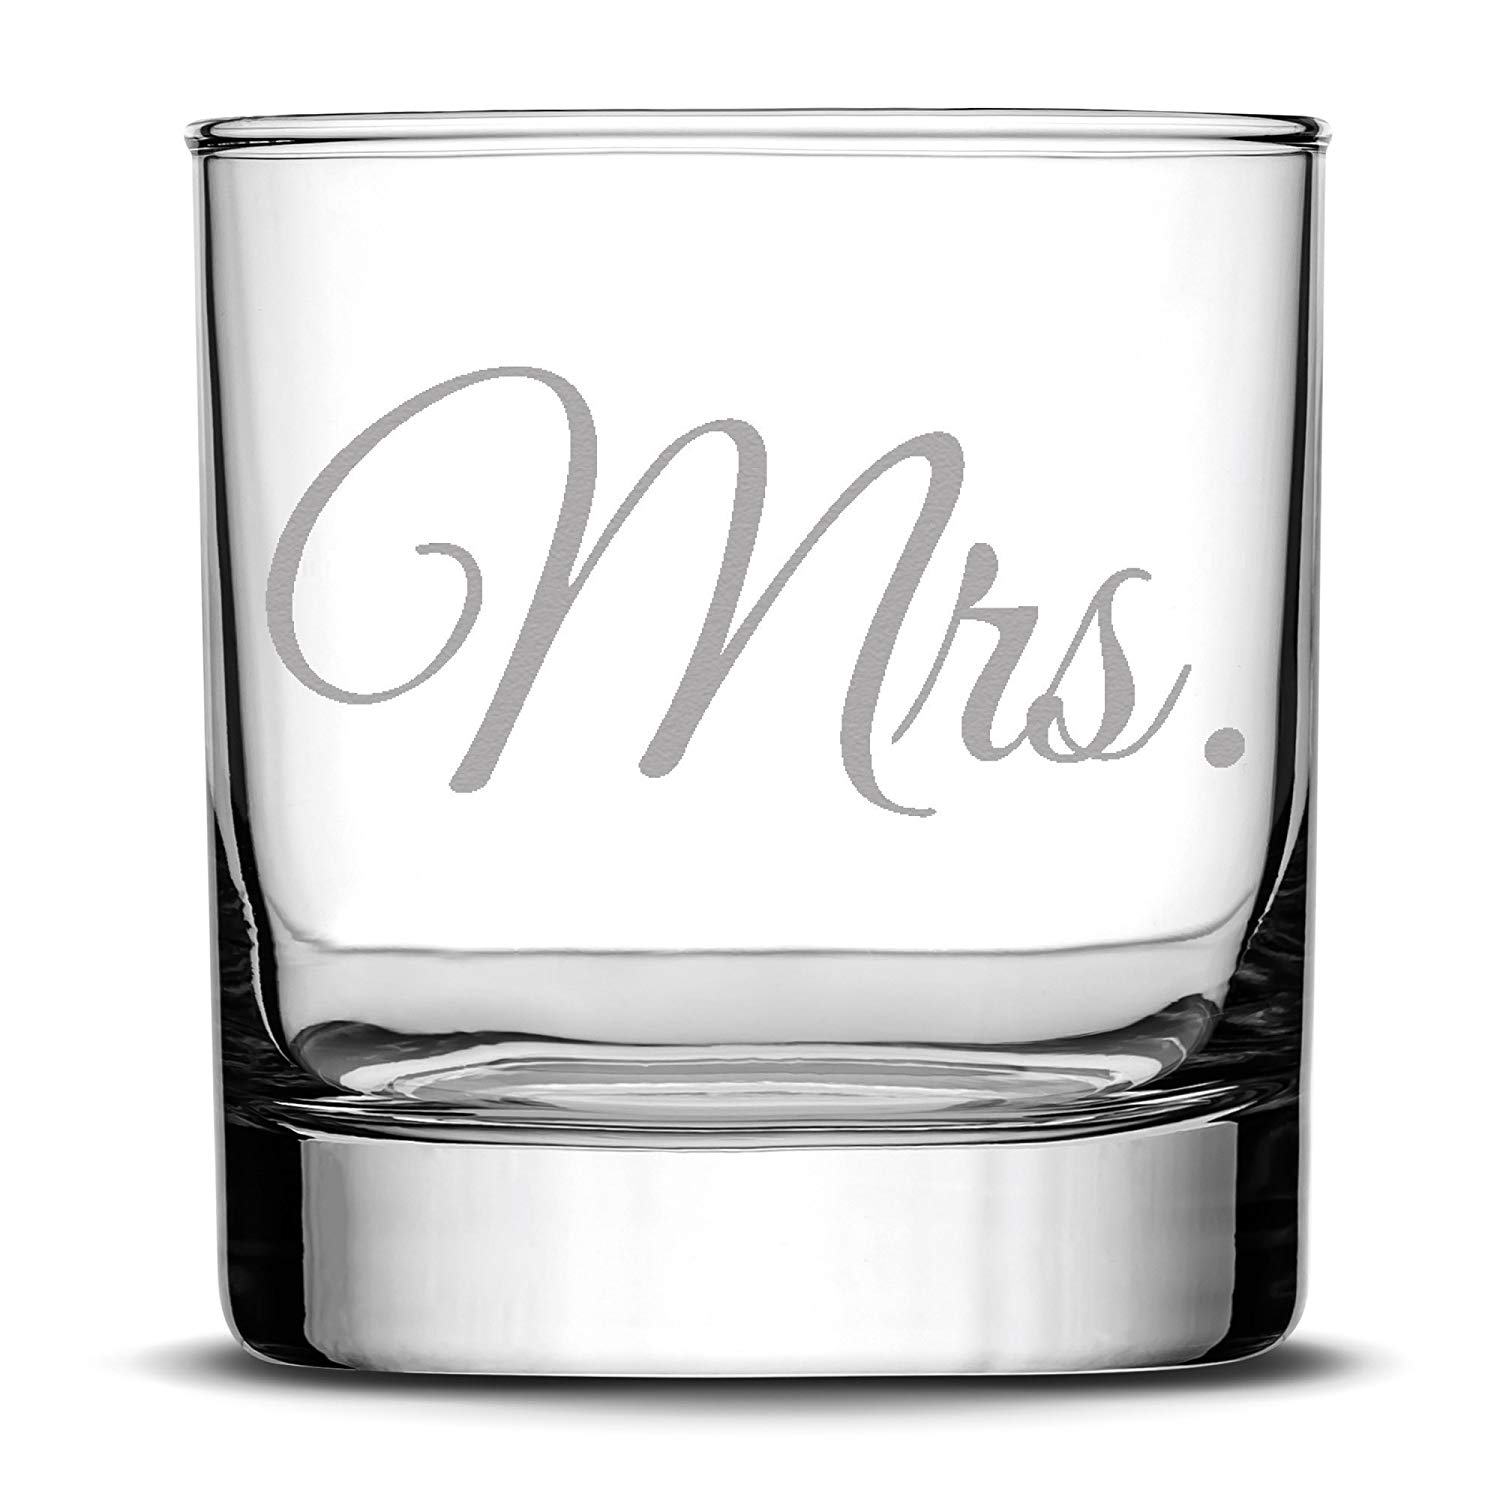 Premium Wedding Whiskey Glass, Mrs., Hand Etched 10oz Rocks Glass, Made in USA, Highball Gifts, Single Glass, Sand Carved by Integrity Bottles